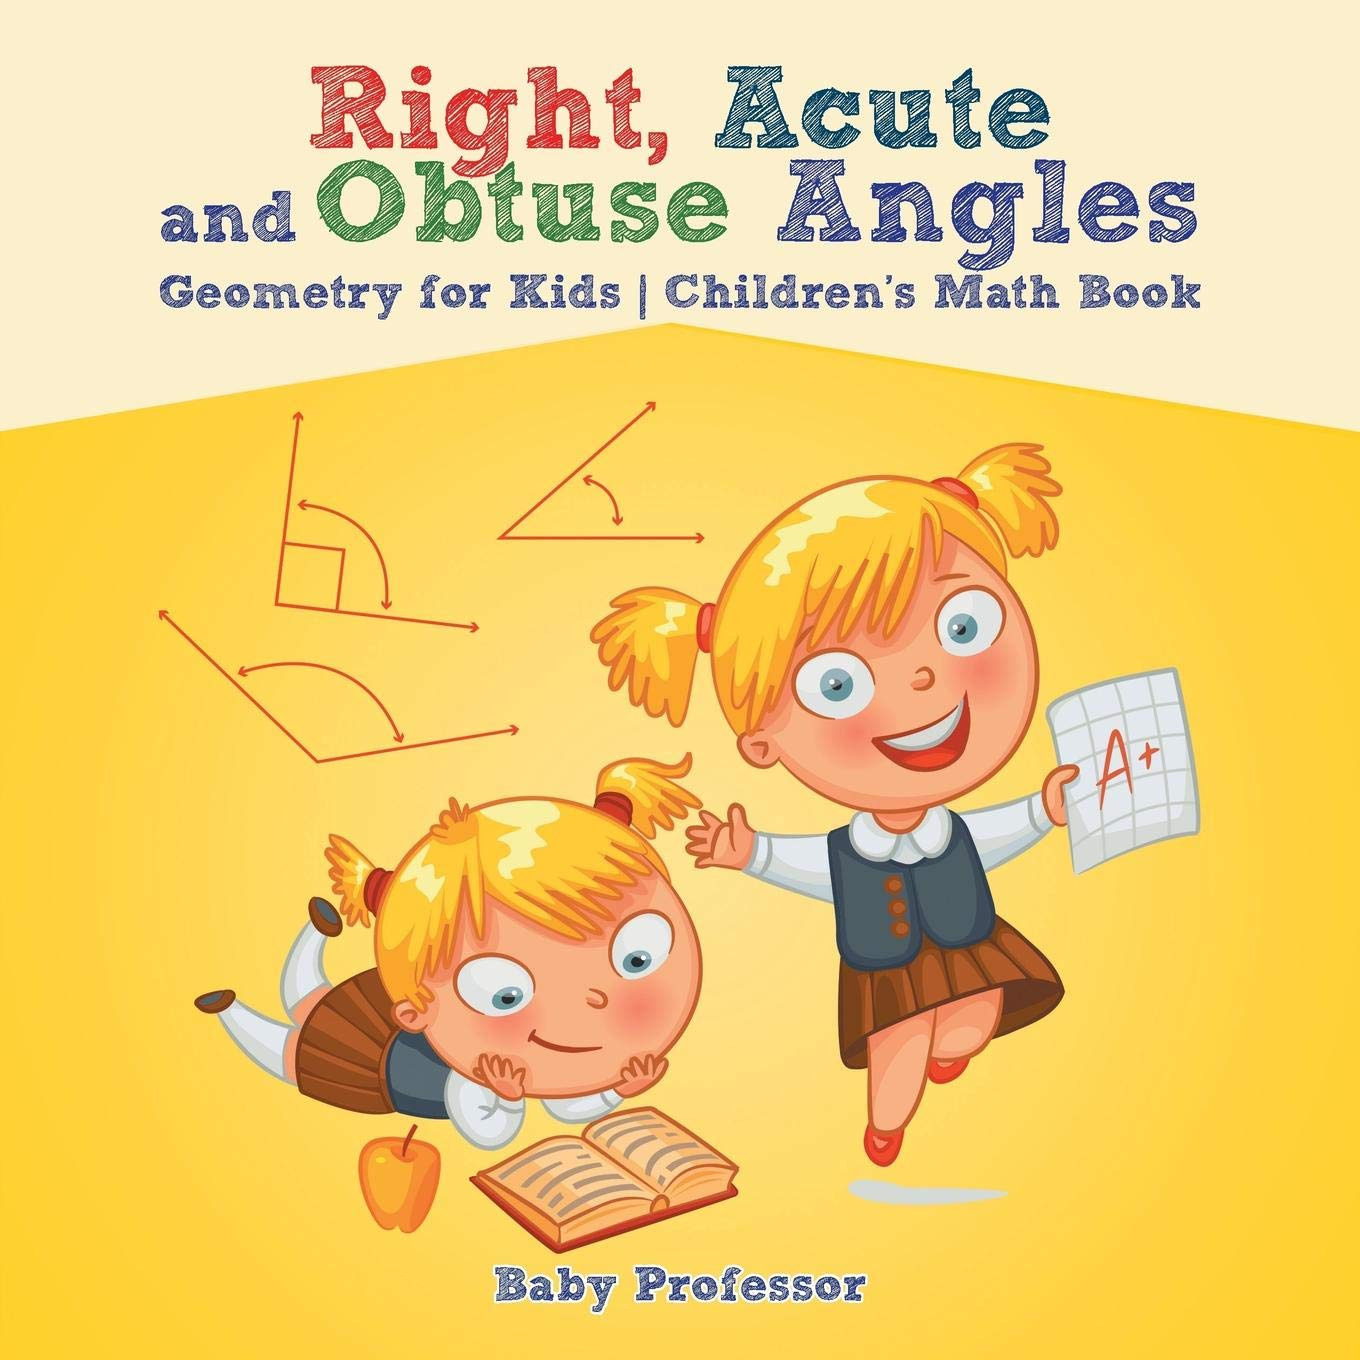 Amazon com: Right, Acute and Obtuse Angles - Geometry for